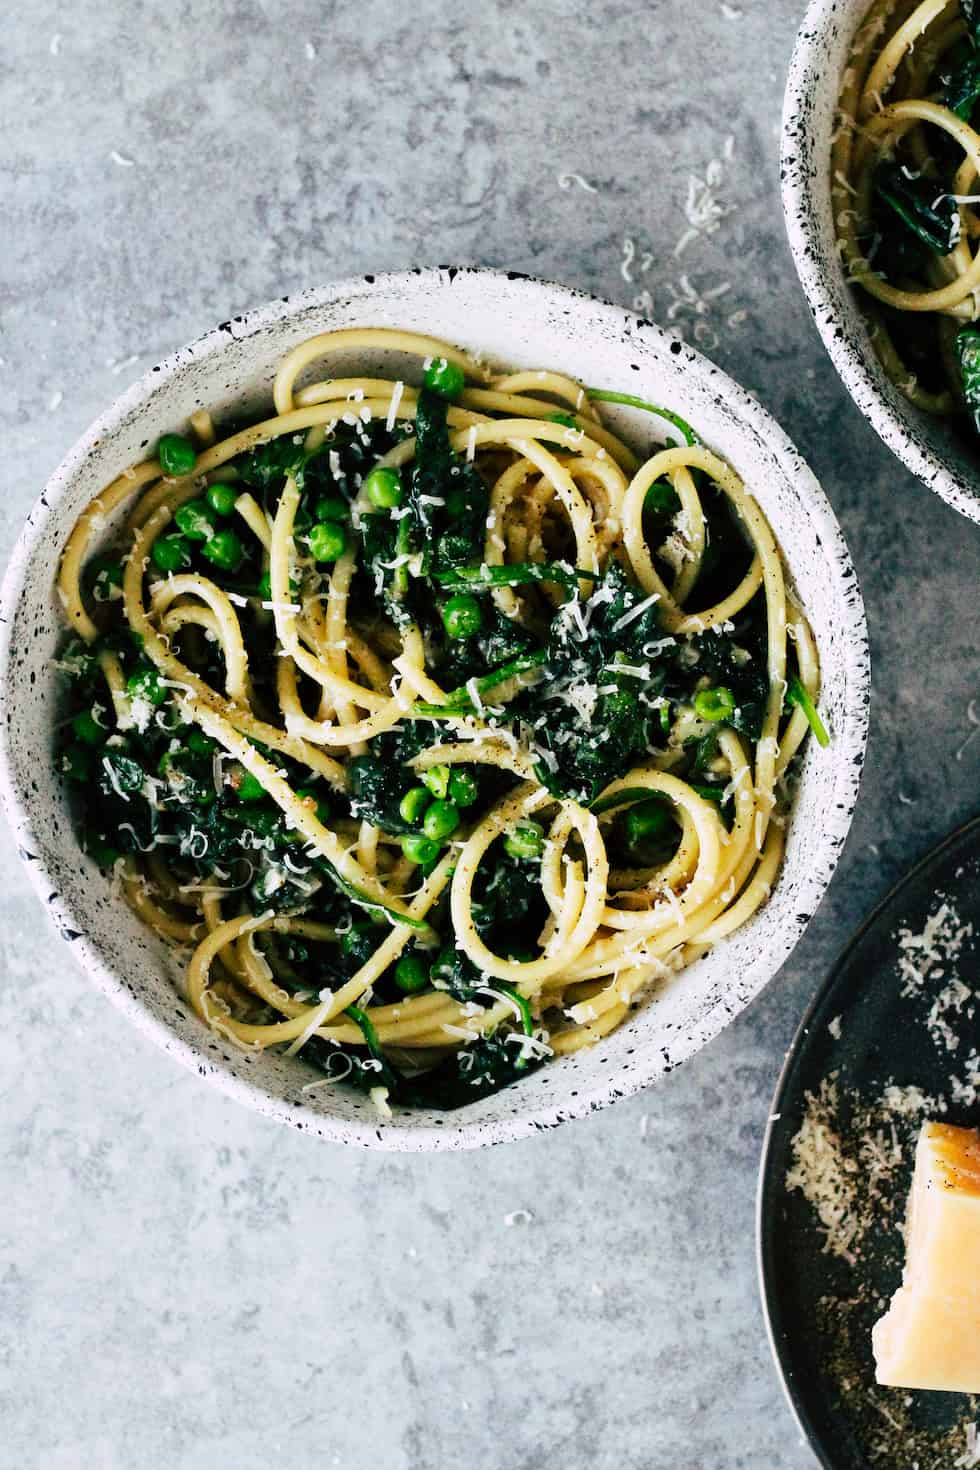 Pasta with spinach and green peas against grey background.